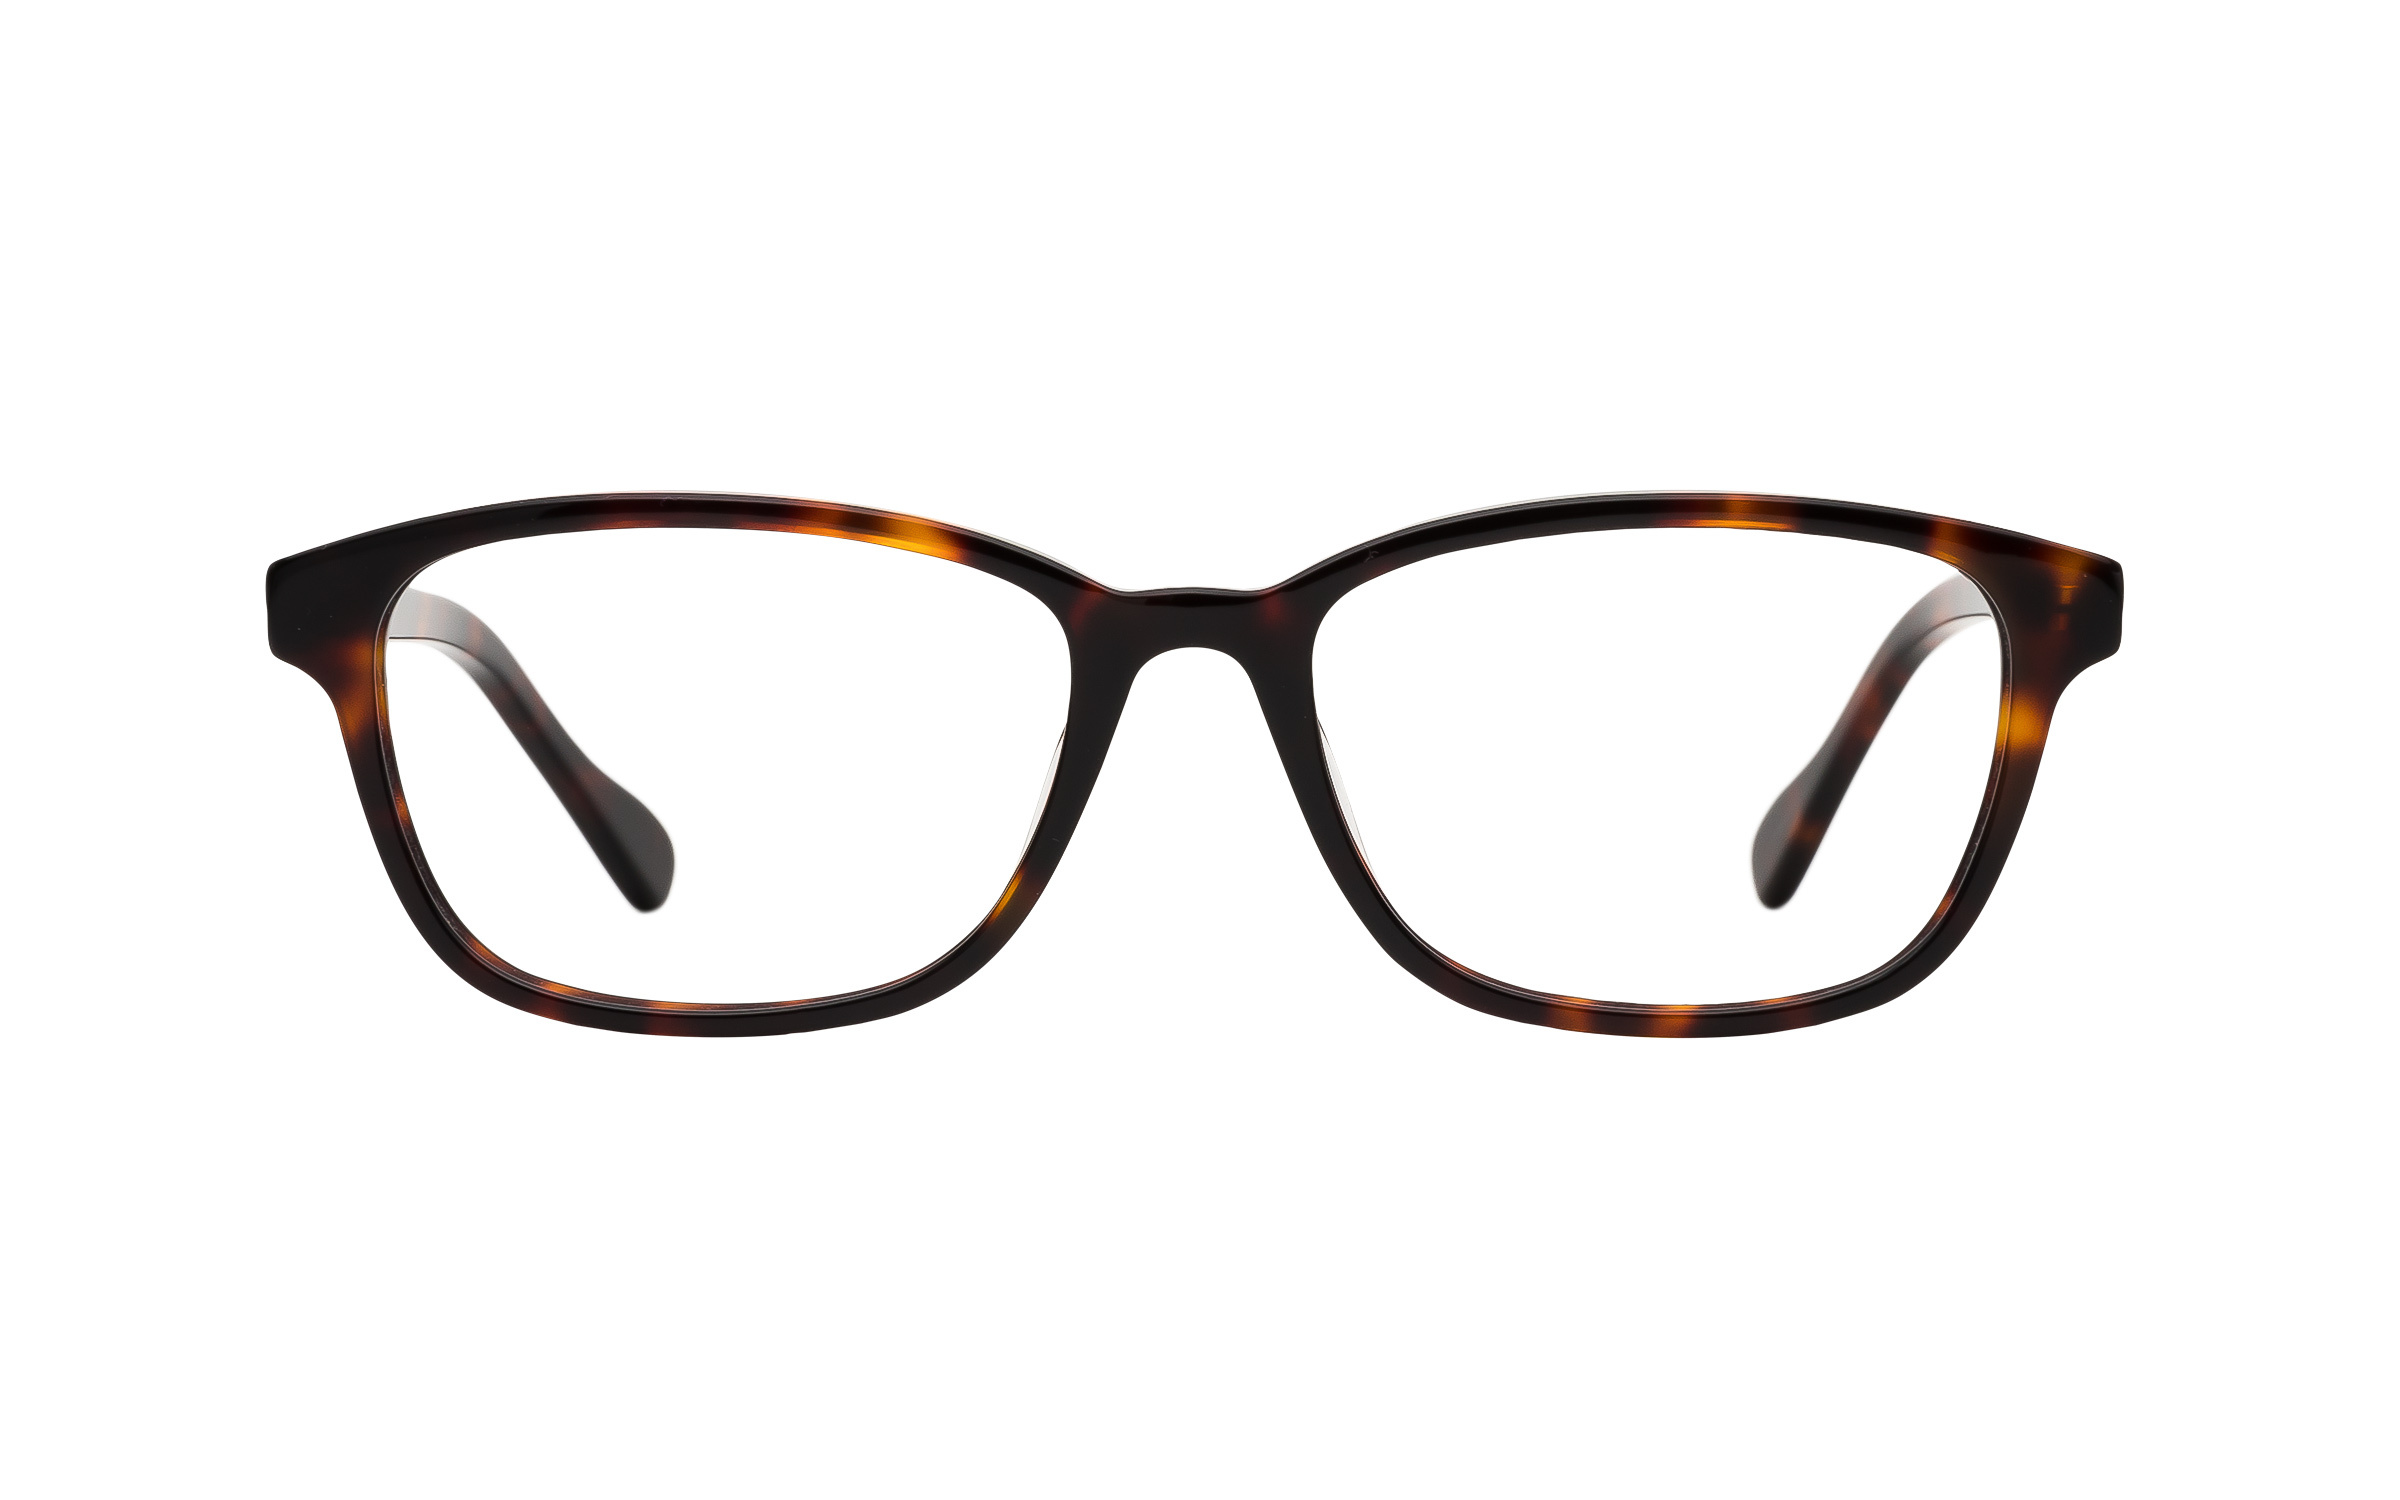 7 for All Mankind Glasses D-Frame Brown/Tortoise Online Clearly